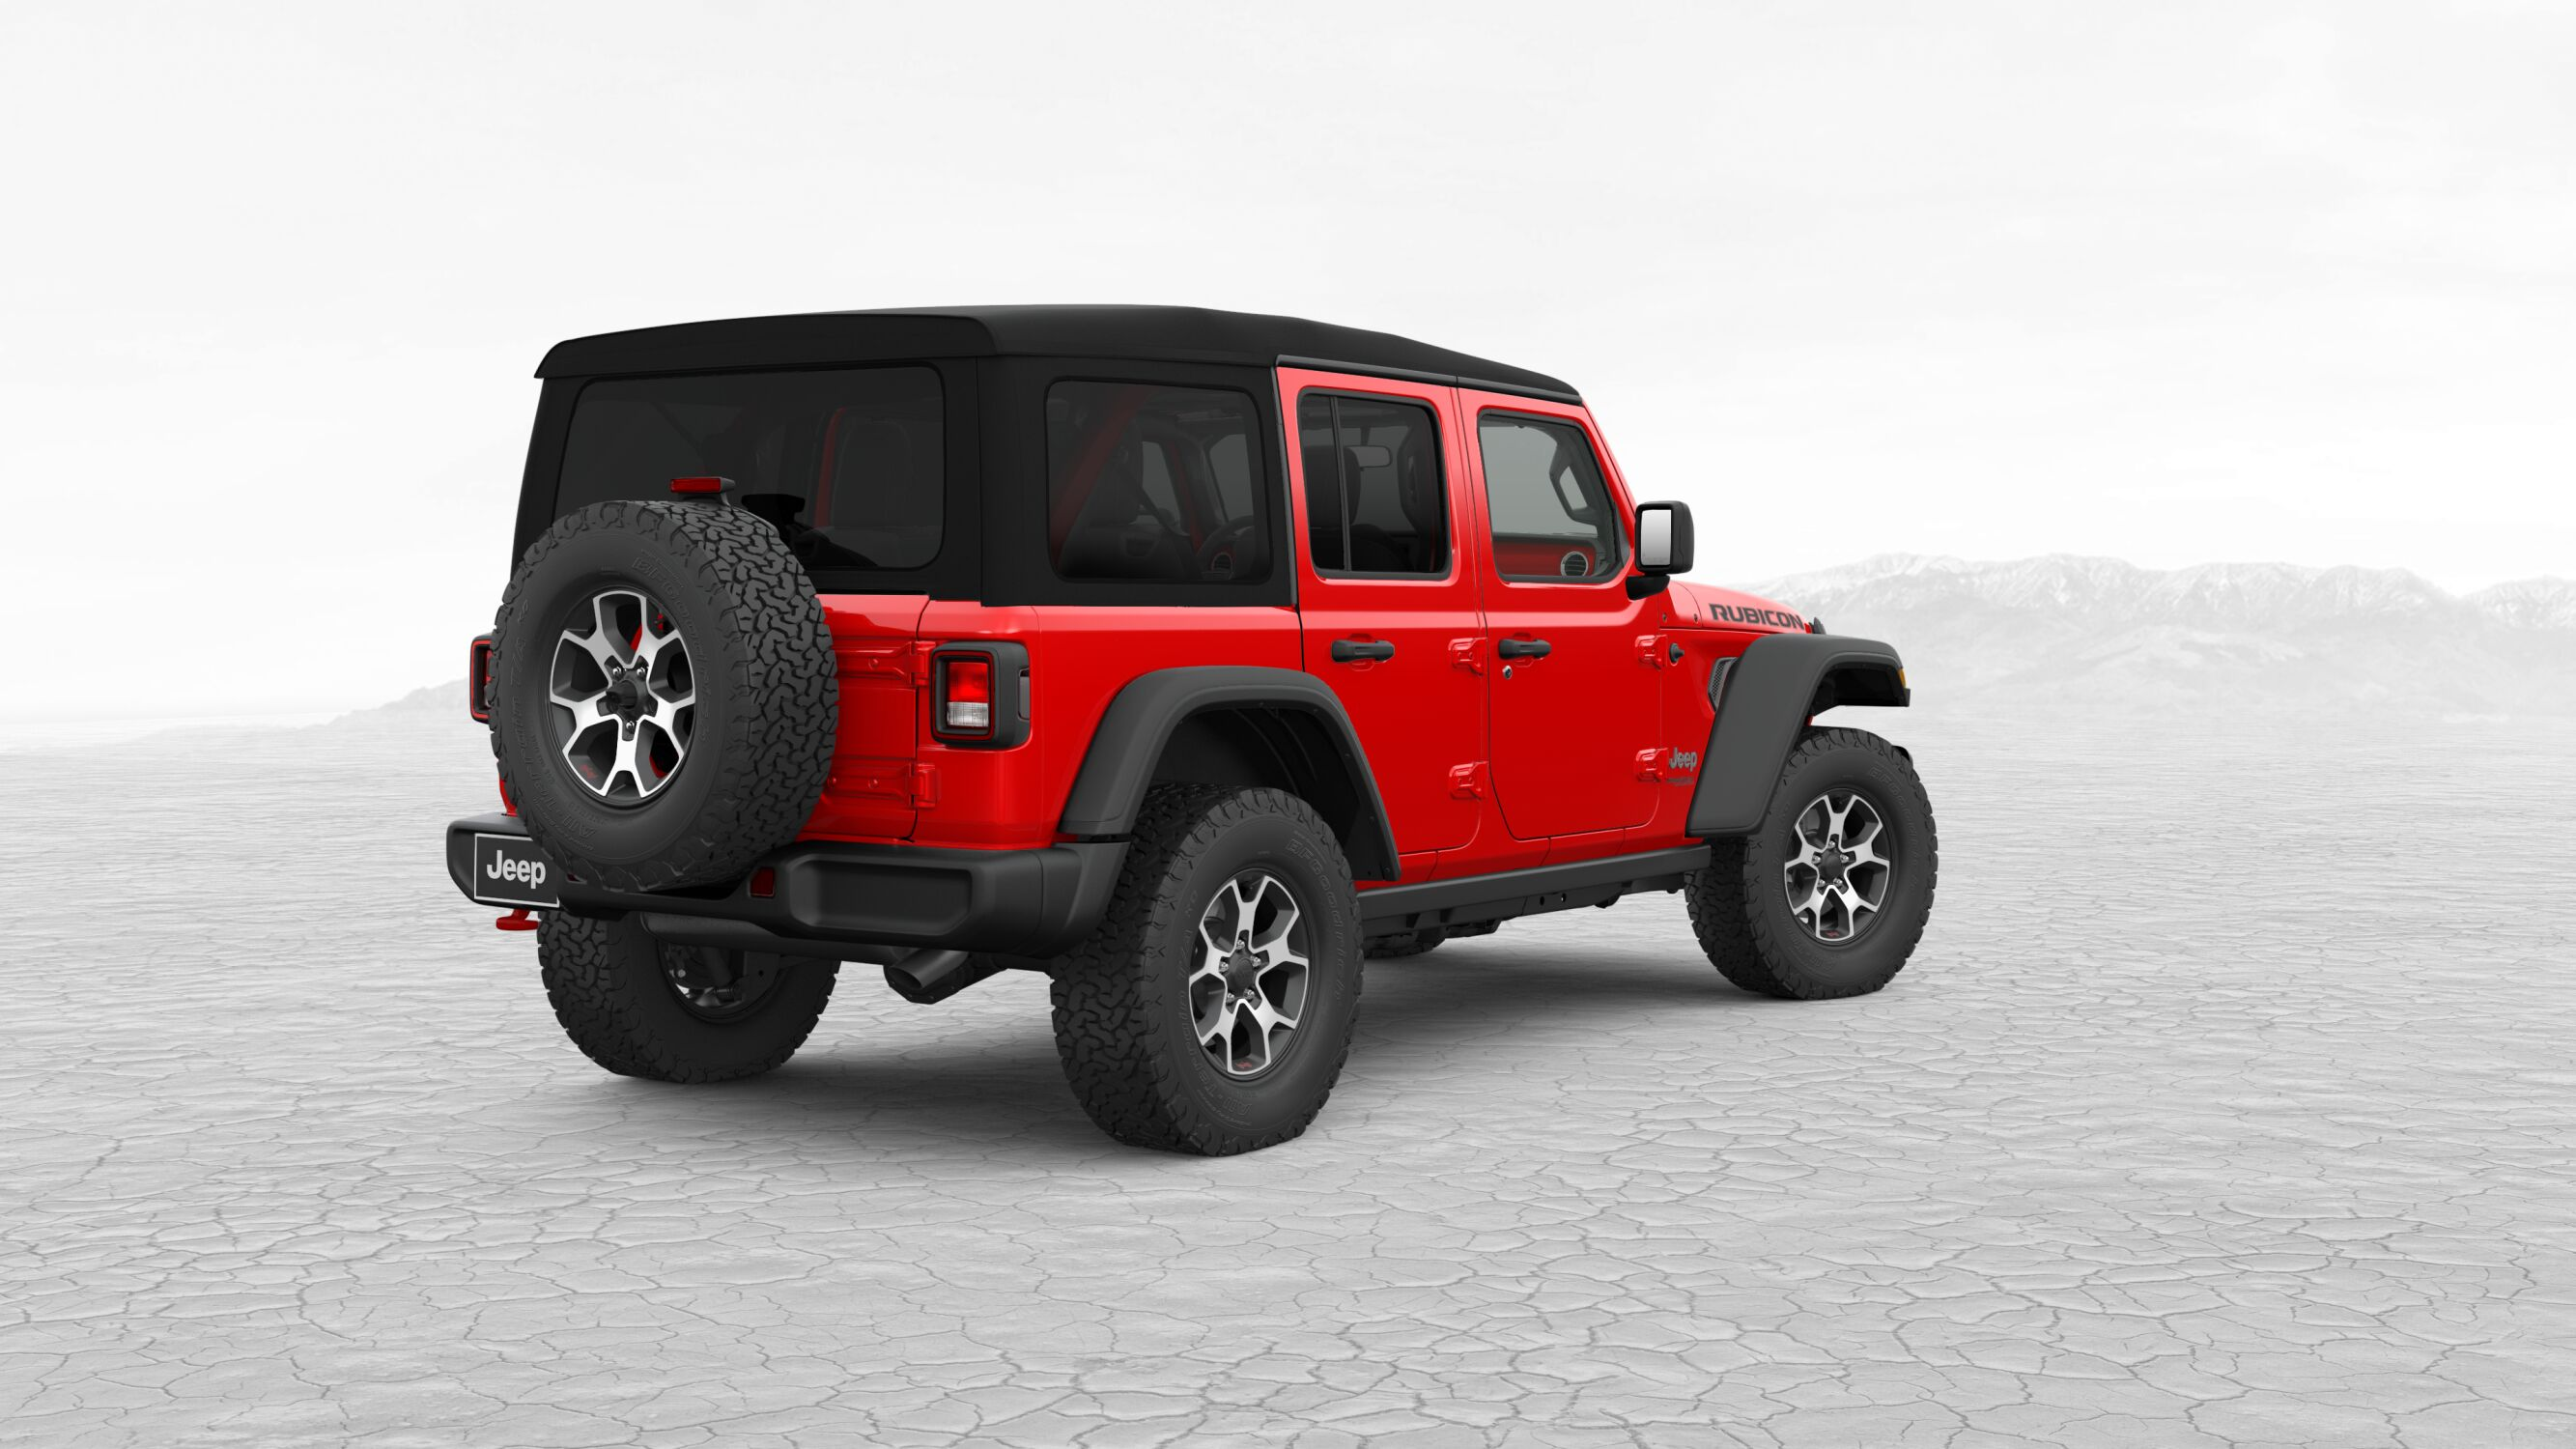 2018 Jeep Wrangler JL Unlimited Rubicon Red Exterior Rear